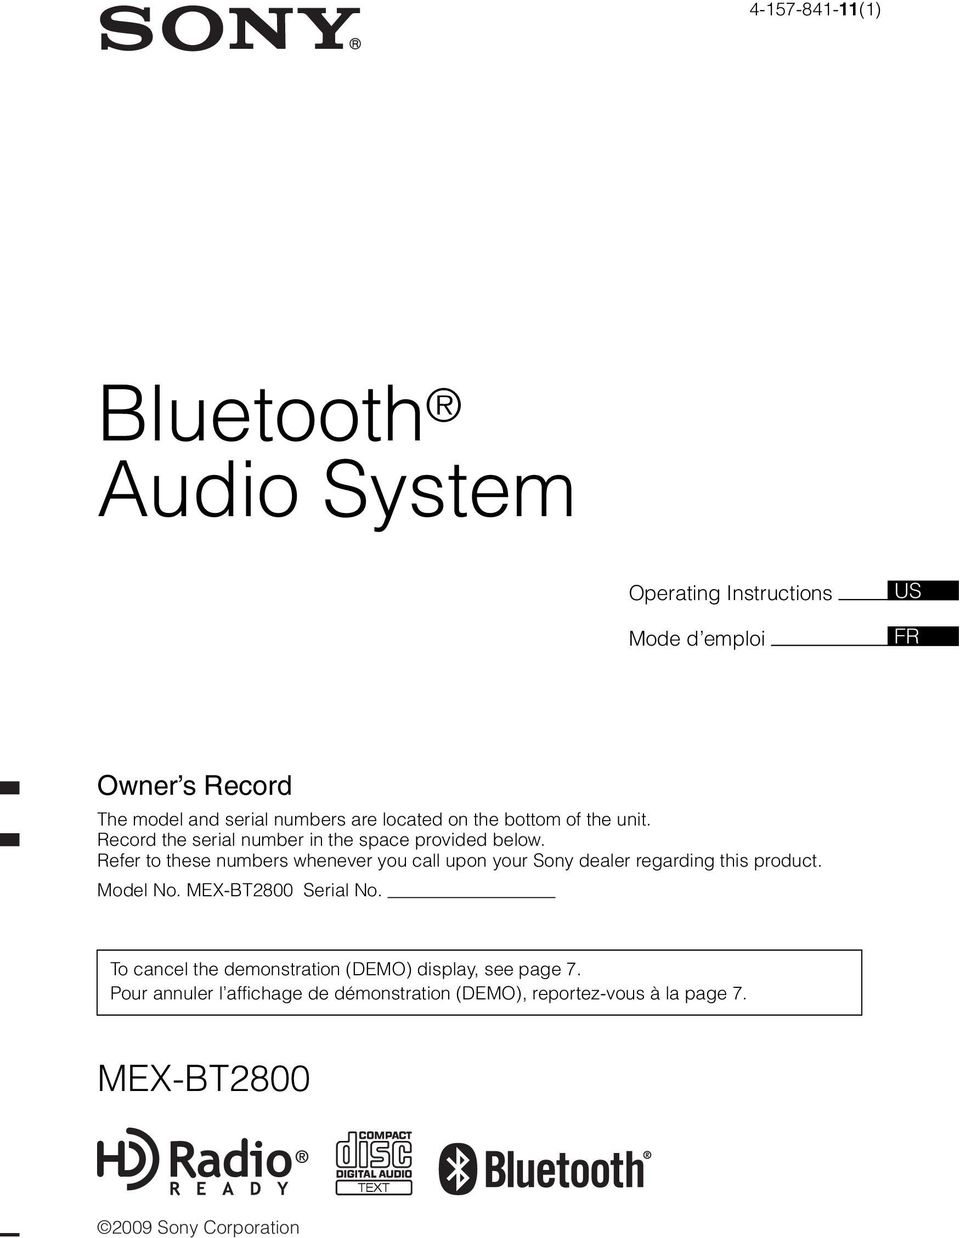 Refer to these numbers whenever you call upon your Sony dealer regarding this product. Model No. MEX-BT2800 Serial No.